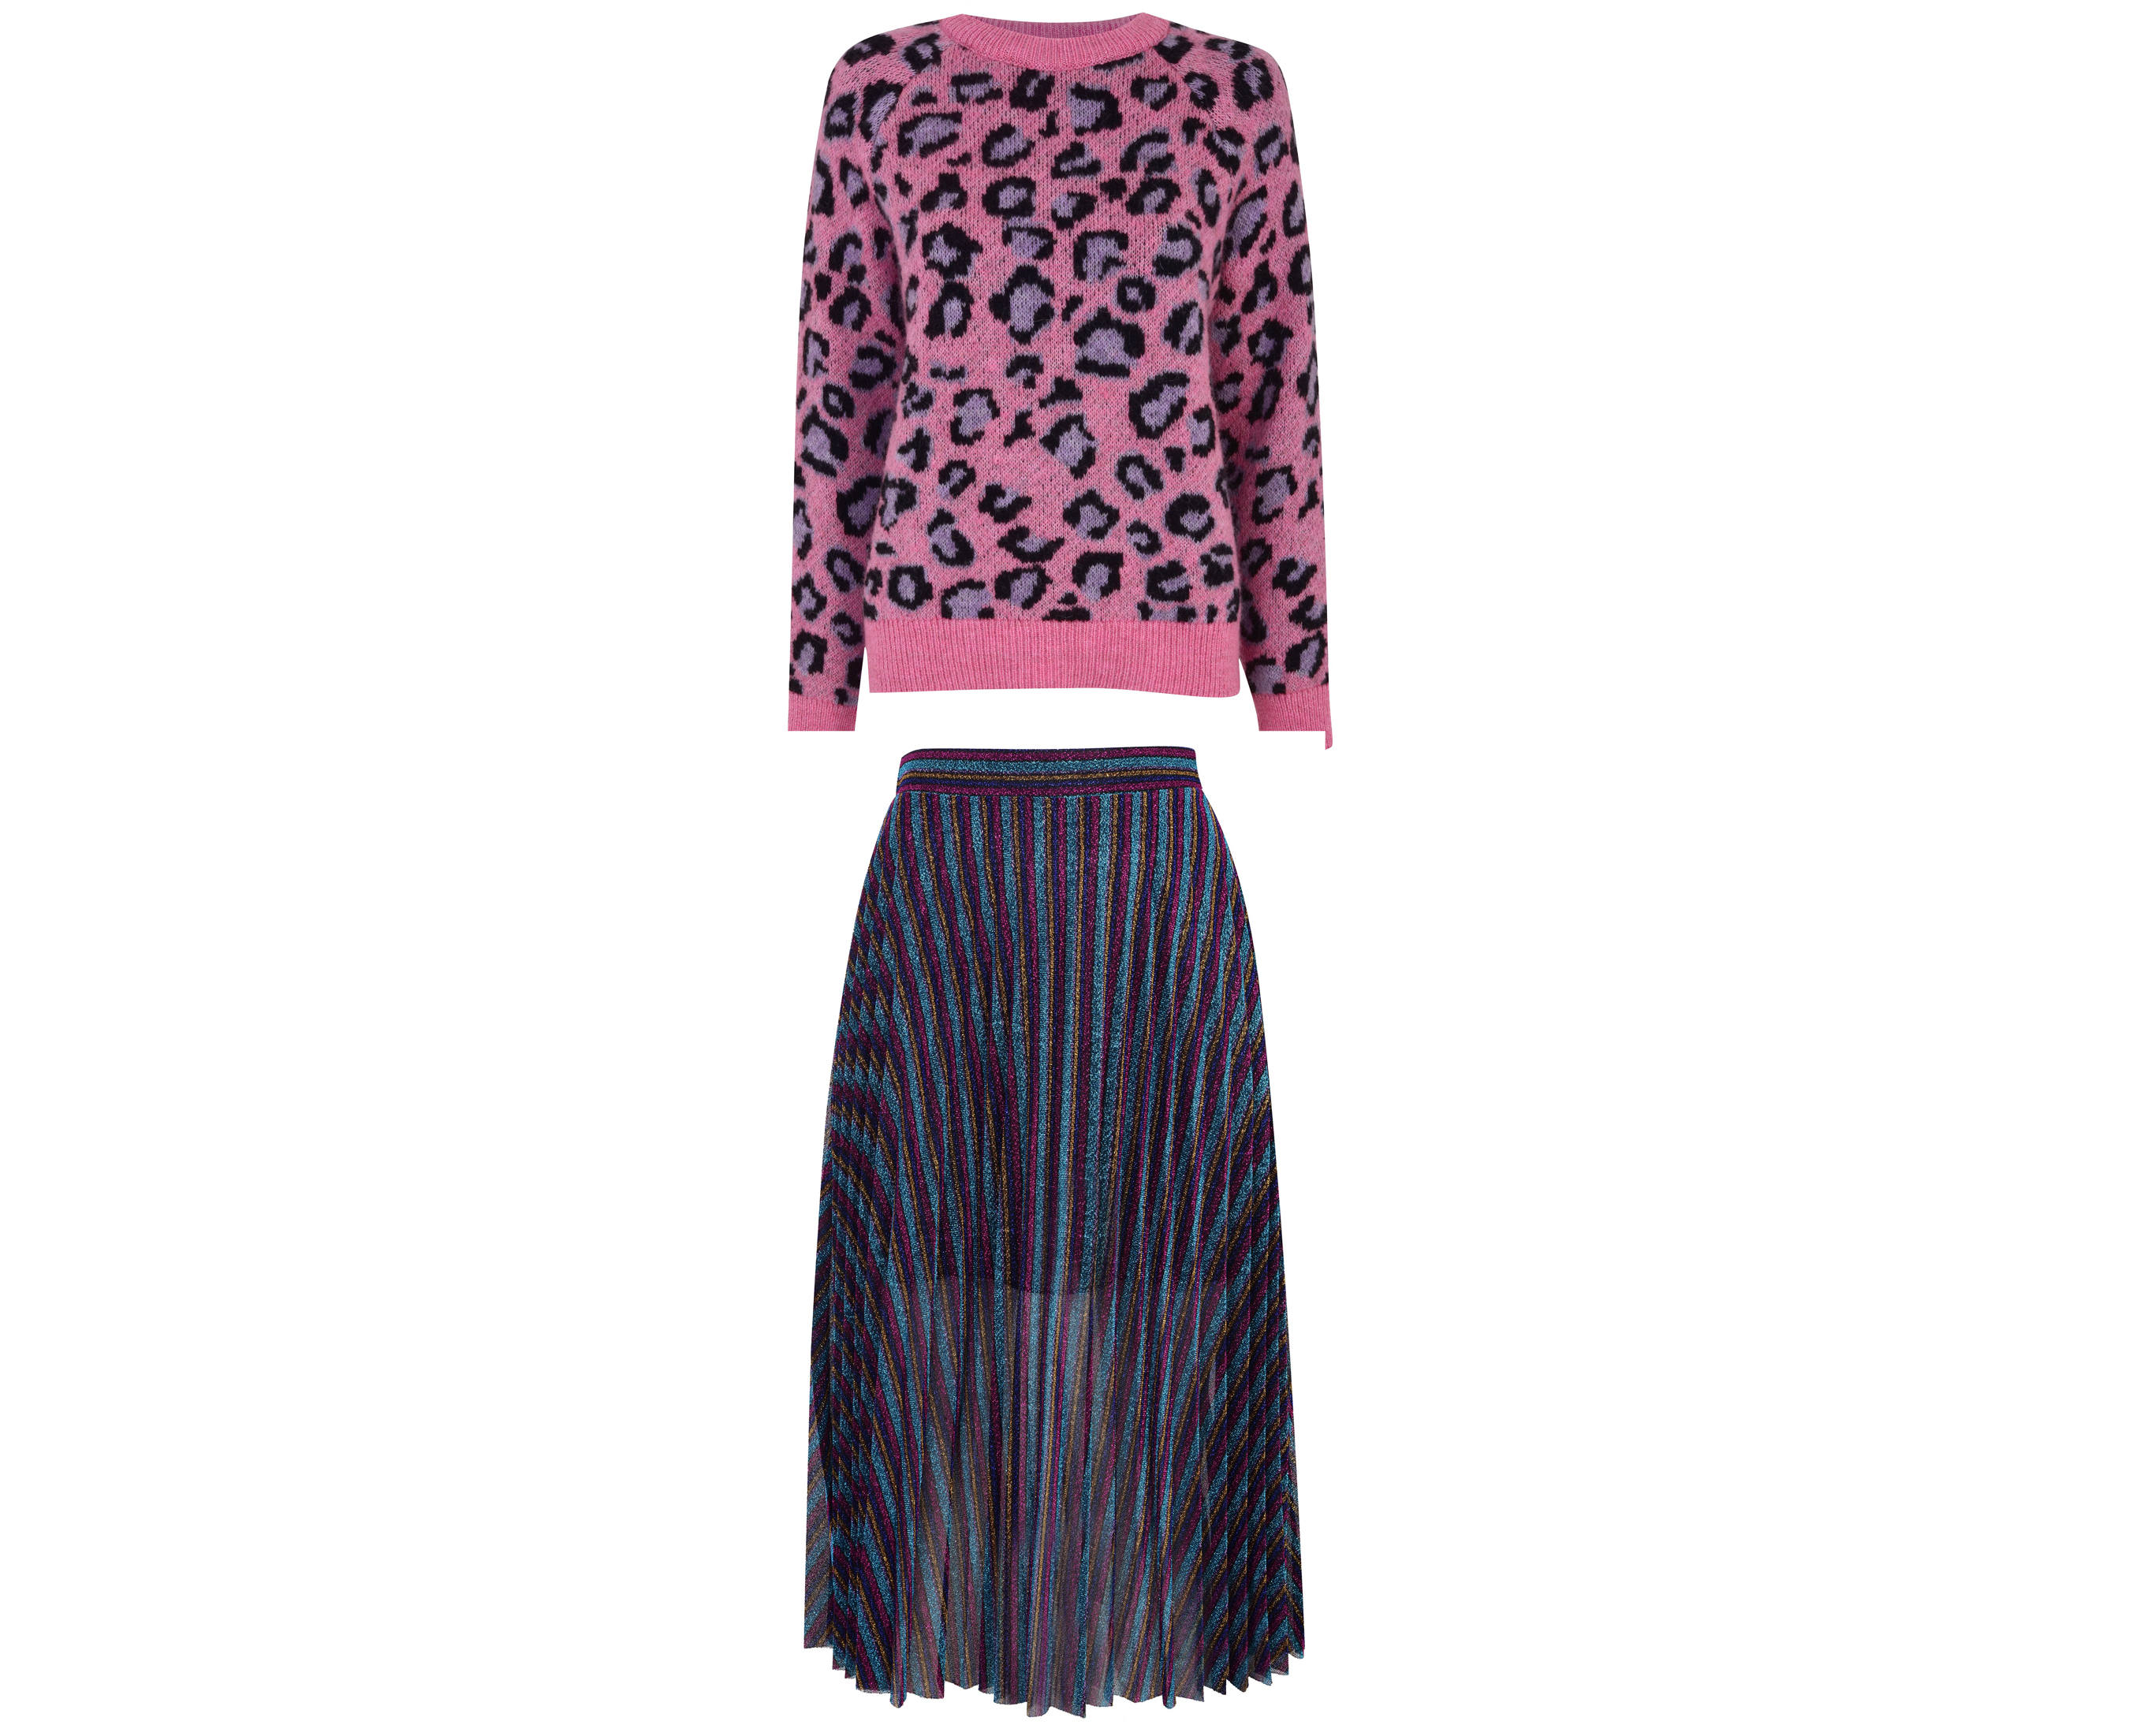 H! by Henry Holland Pink Animal Print Jumper and Purple Metallic Stripe Pleated Midi Skirt